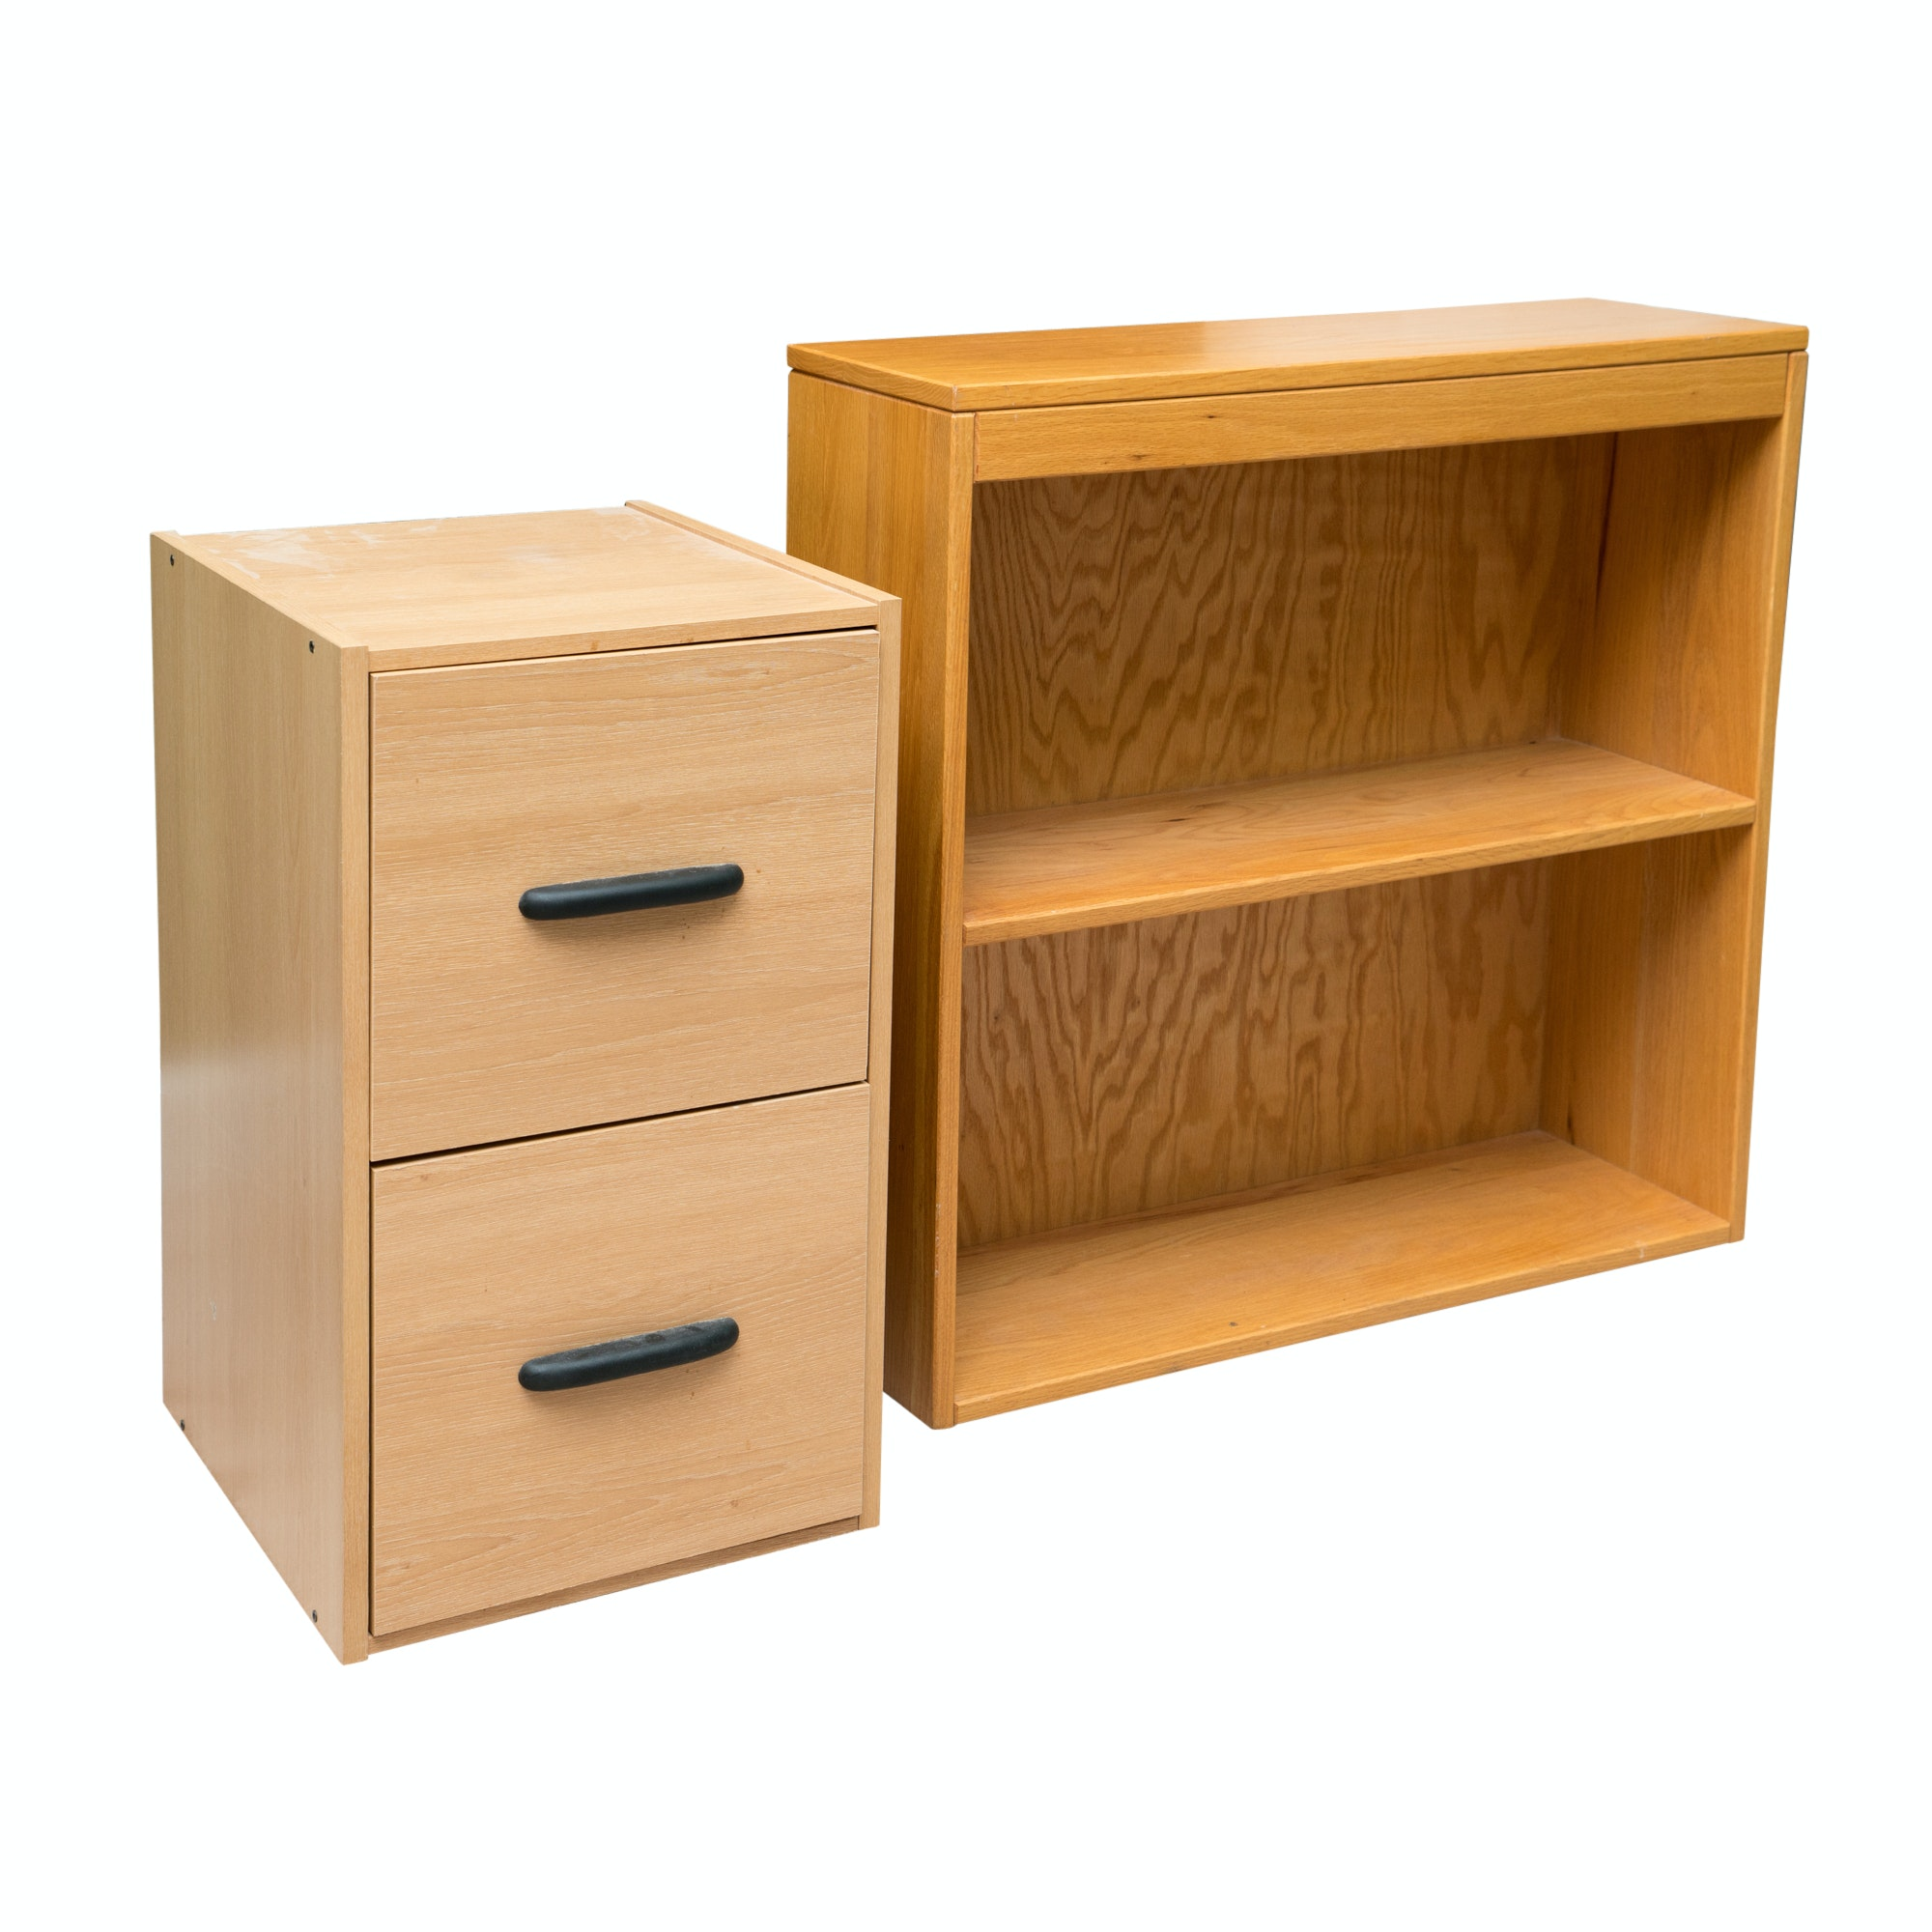 Oak Bookcase By Adden Furniture With Two Drawer File Cabinet ...